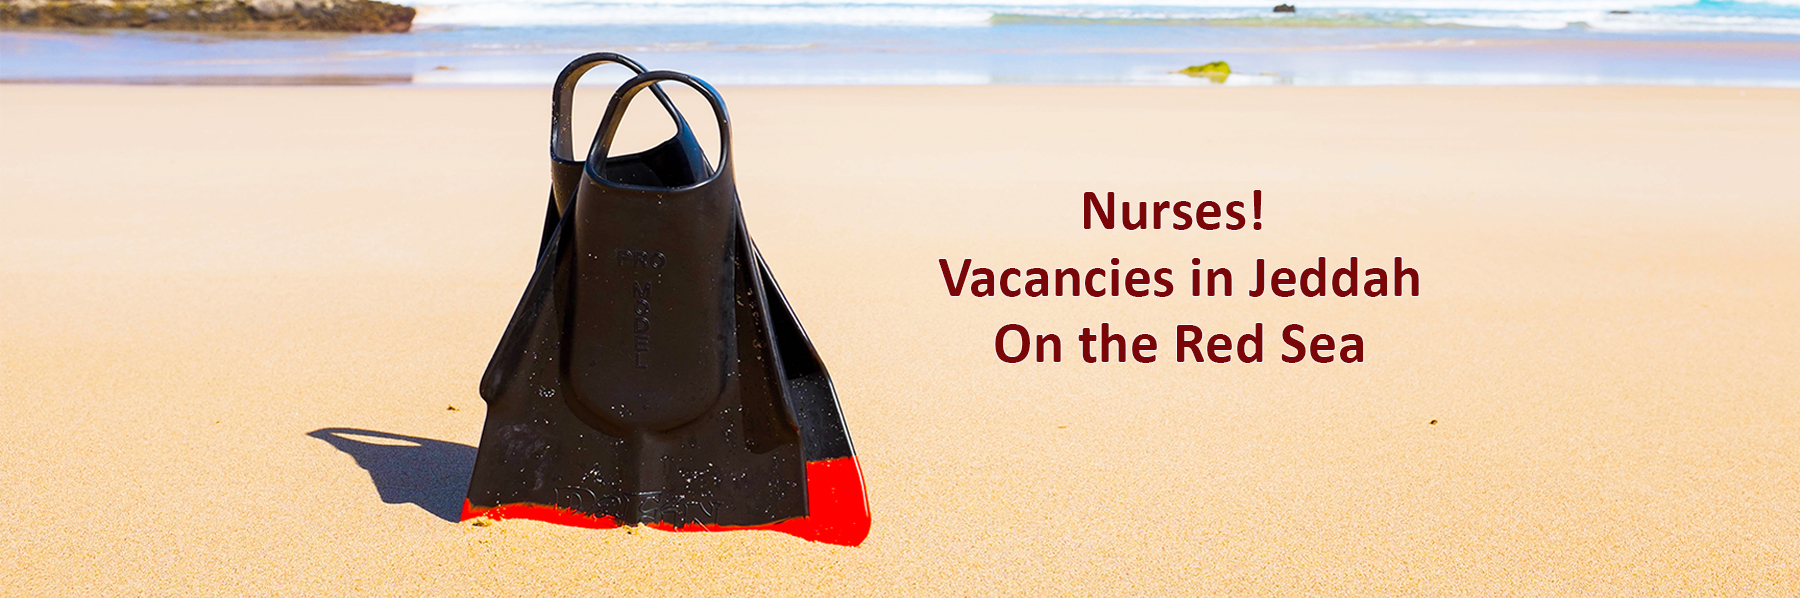 Nurses, live and work at the gateway to the Red Sea – Jeddah